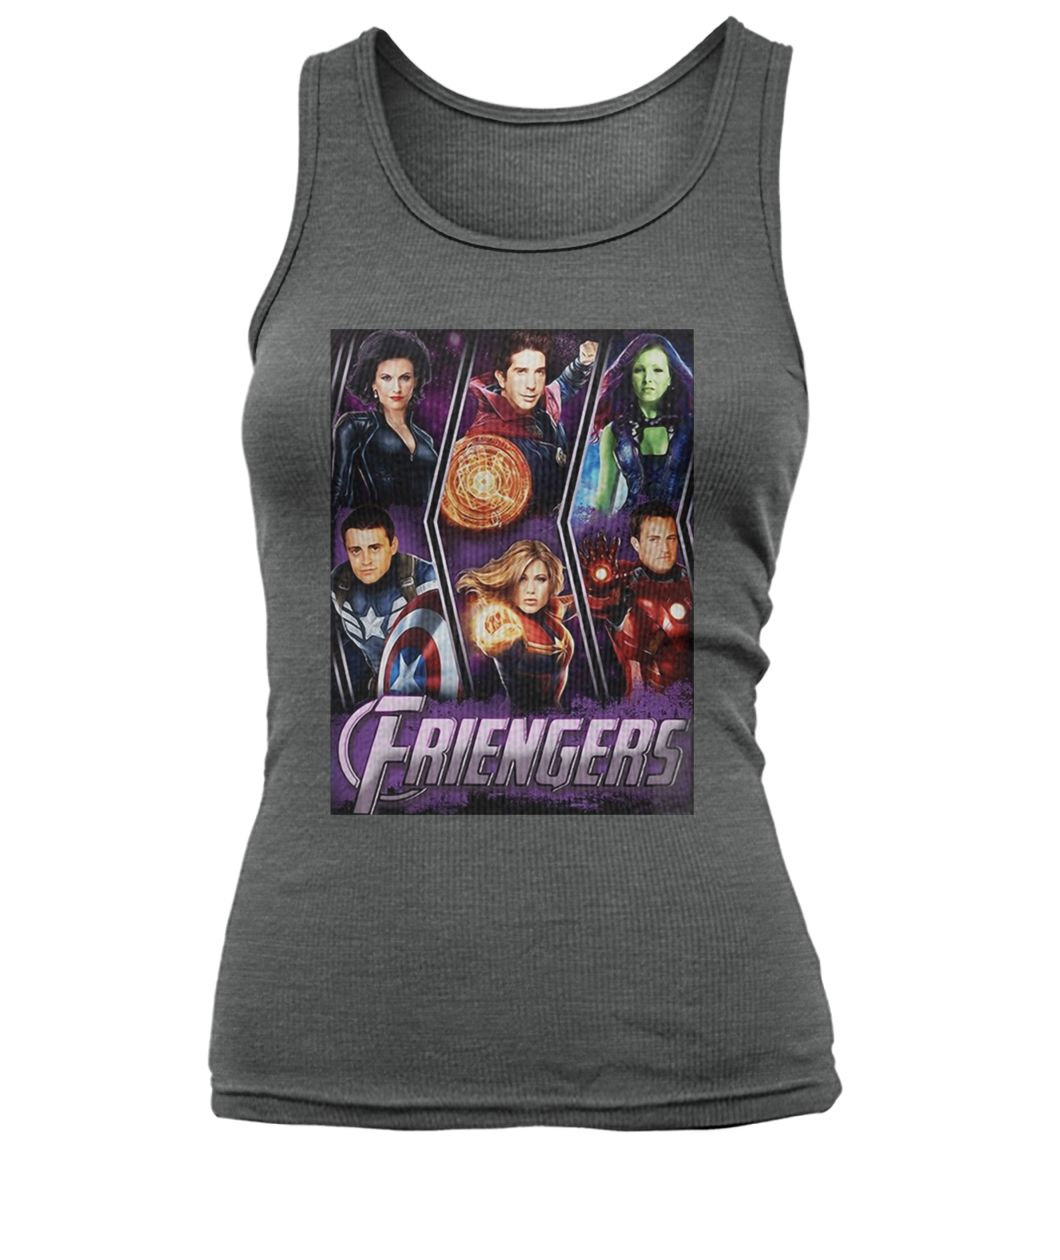 Marvel avengers endgame friengers friend women's tank top